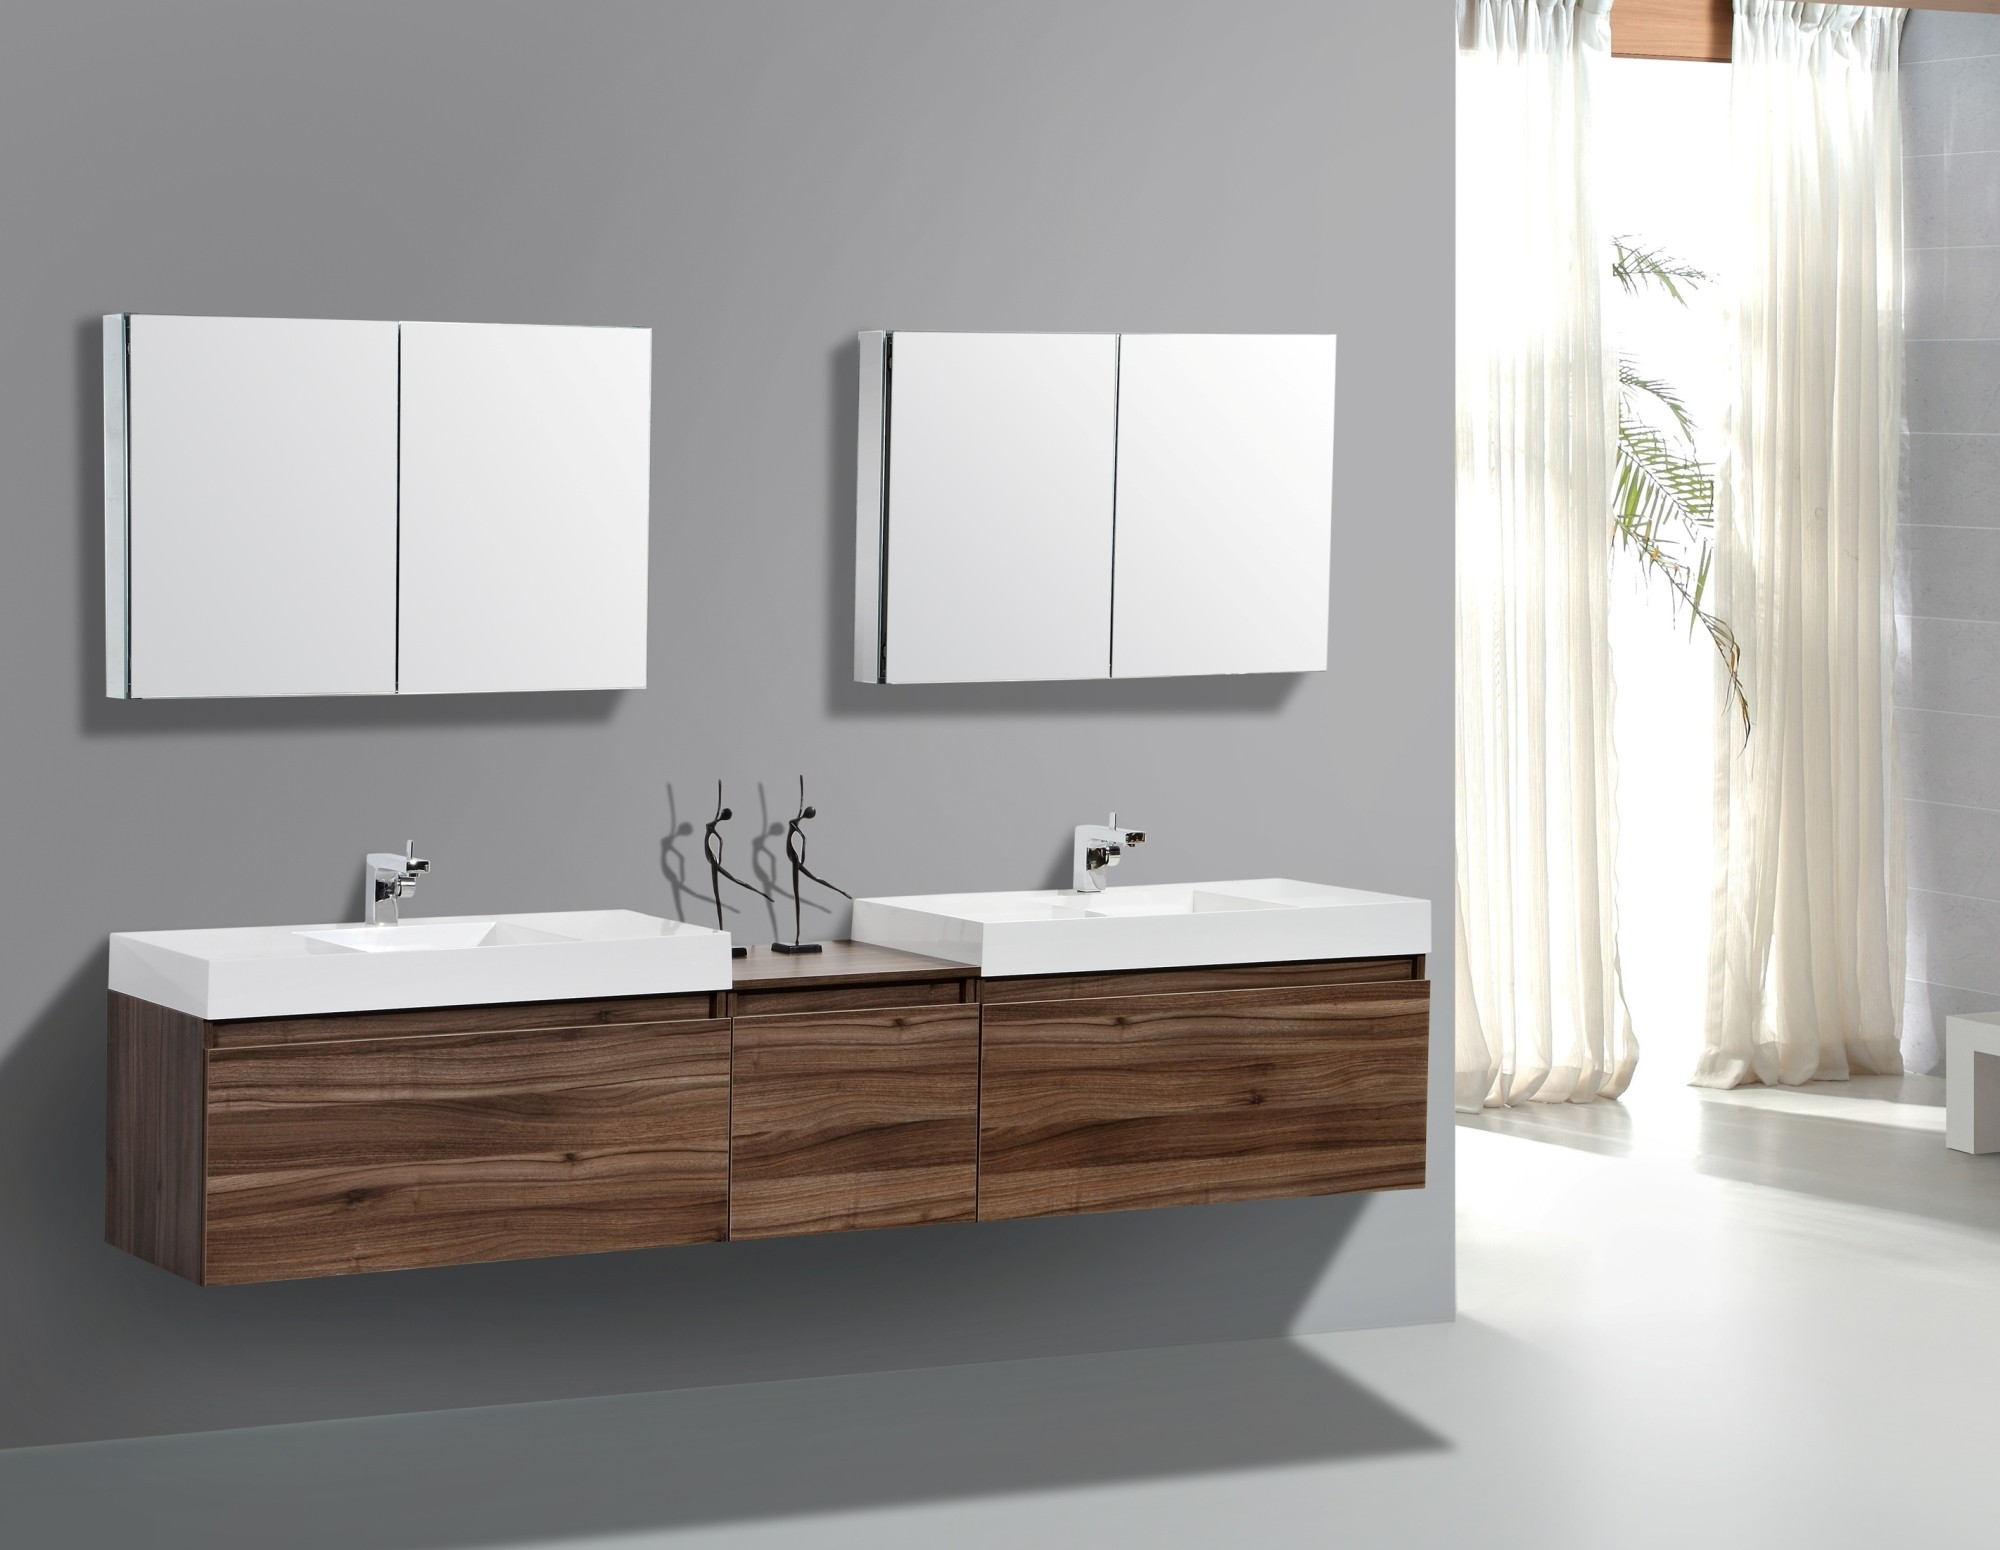 Choosing the Best Modern Bathroom Vanities & Vanity Sets